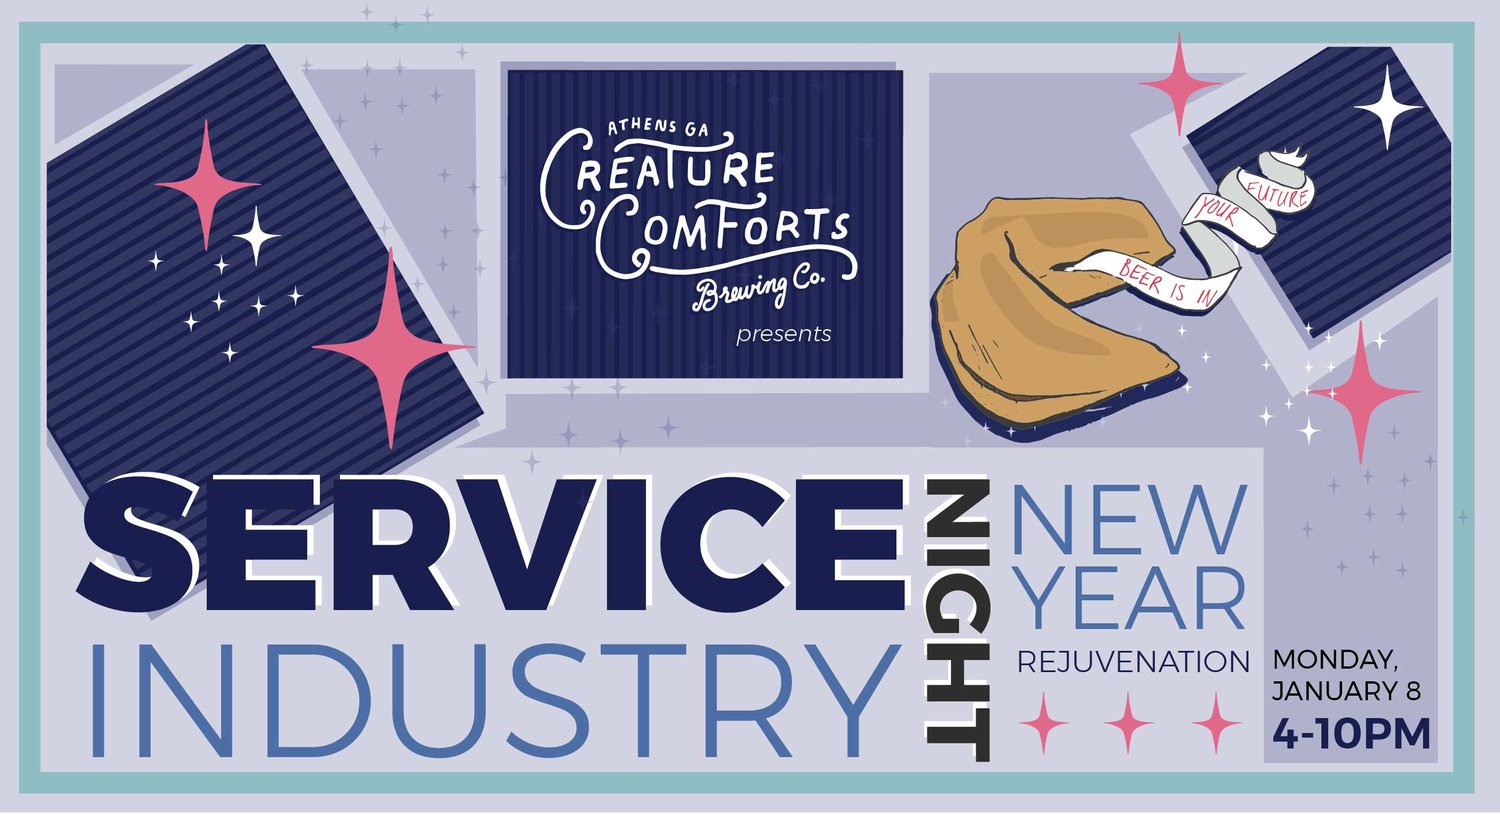 service industry night new year rejuvenation creature comforts brewing co